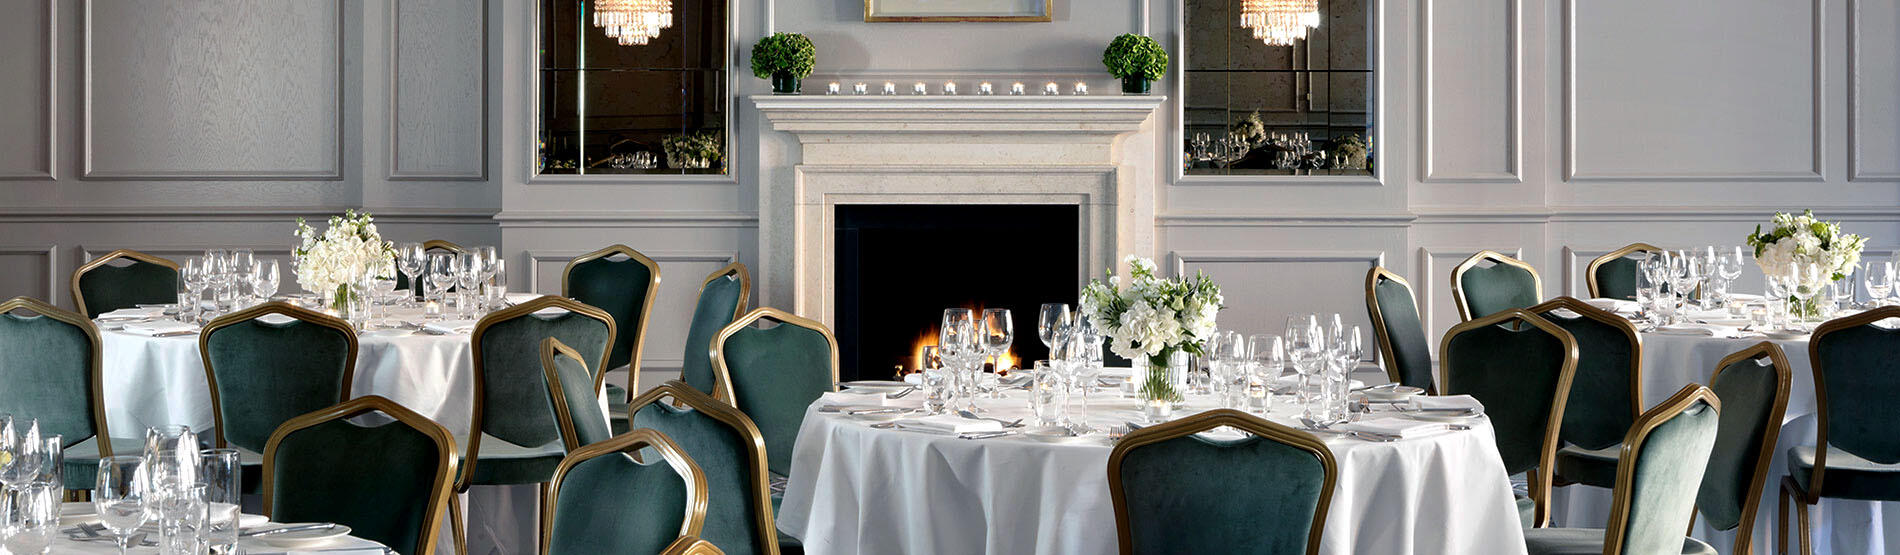 Meeting Rooms In Dublin City Centre The Westbury Hotel